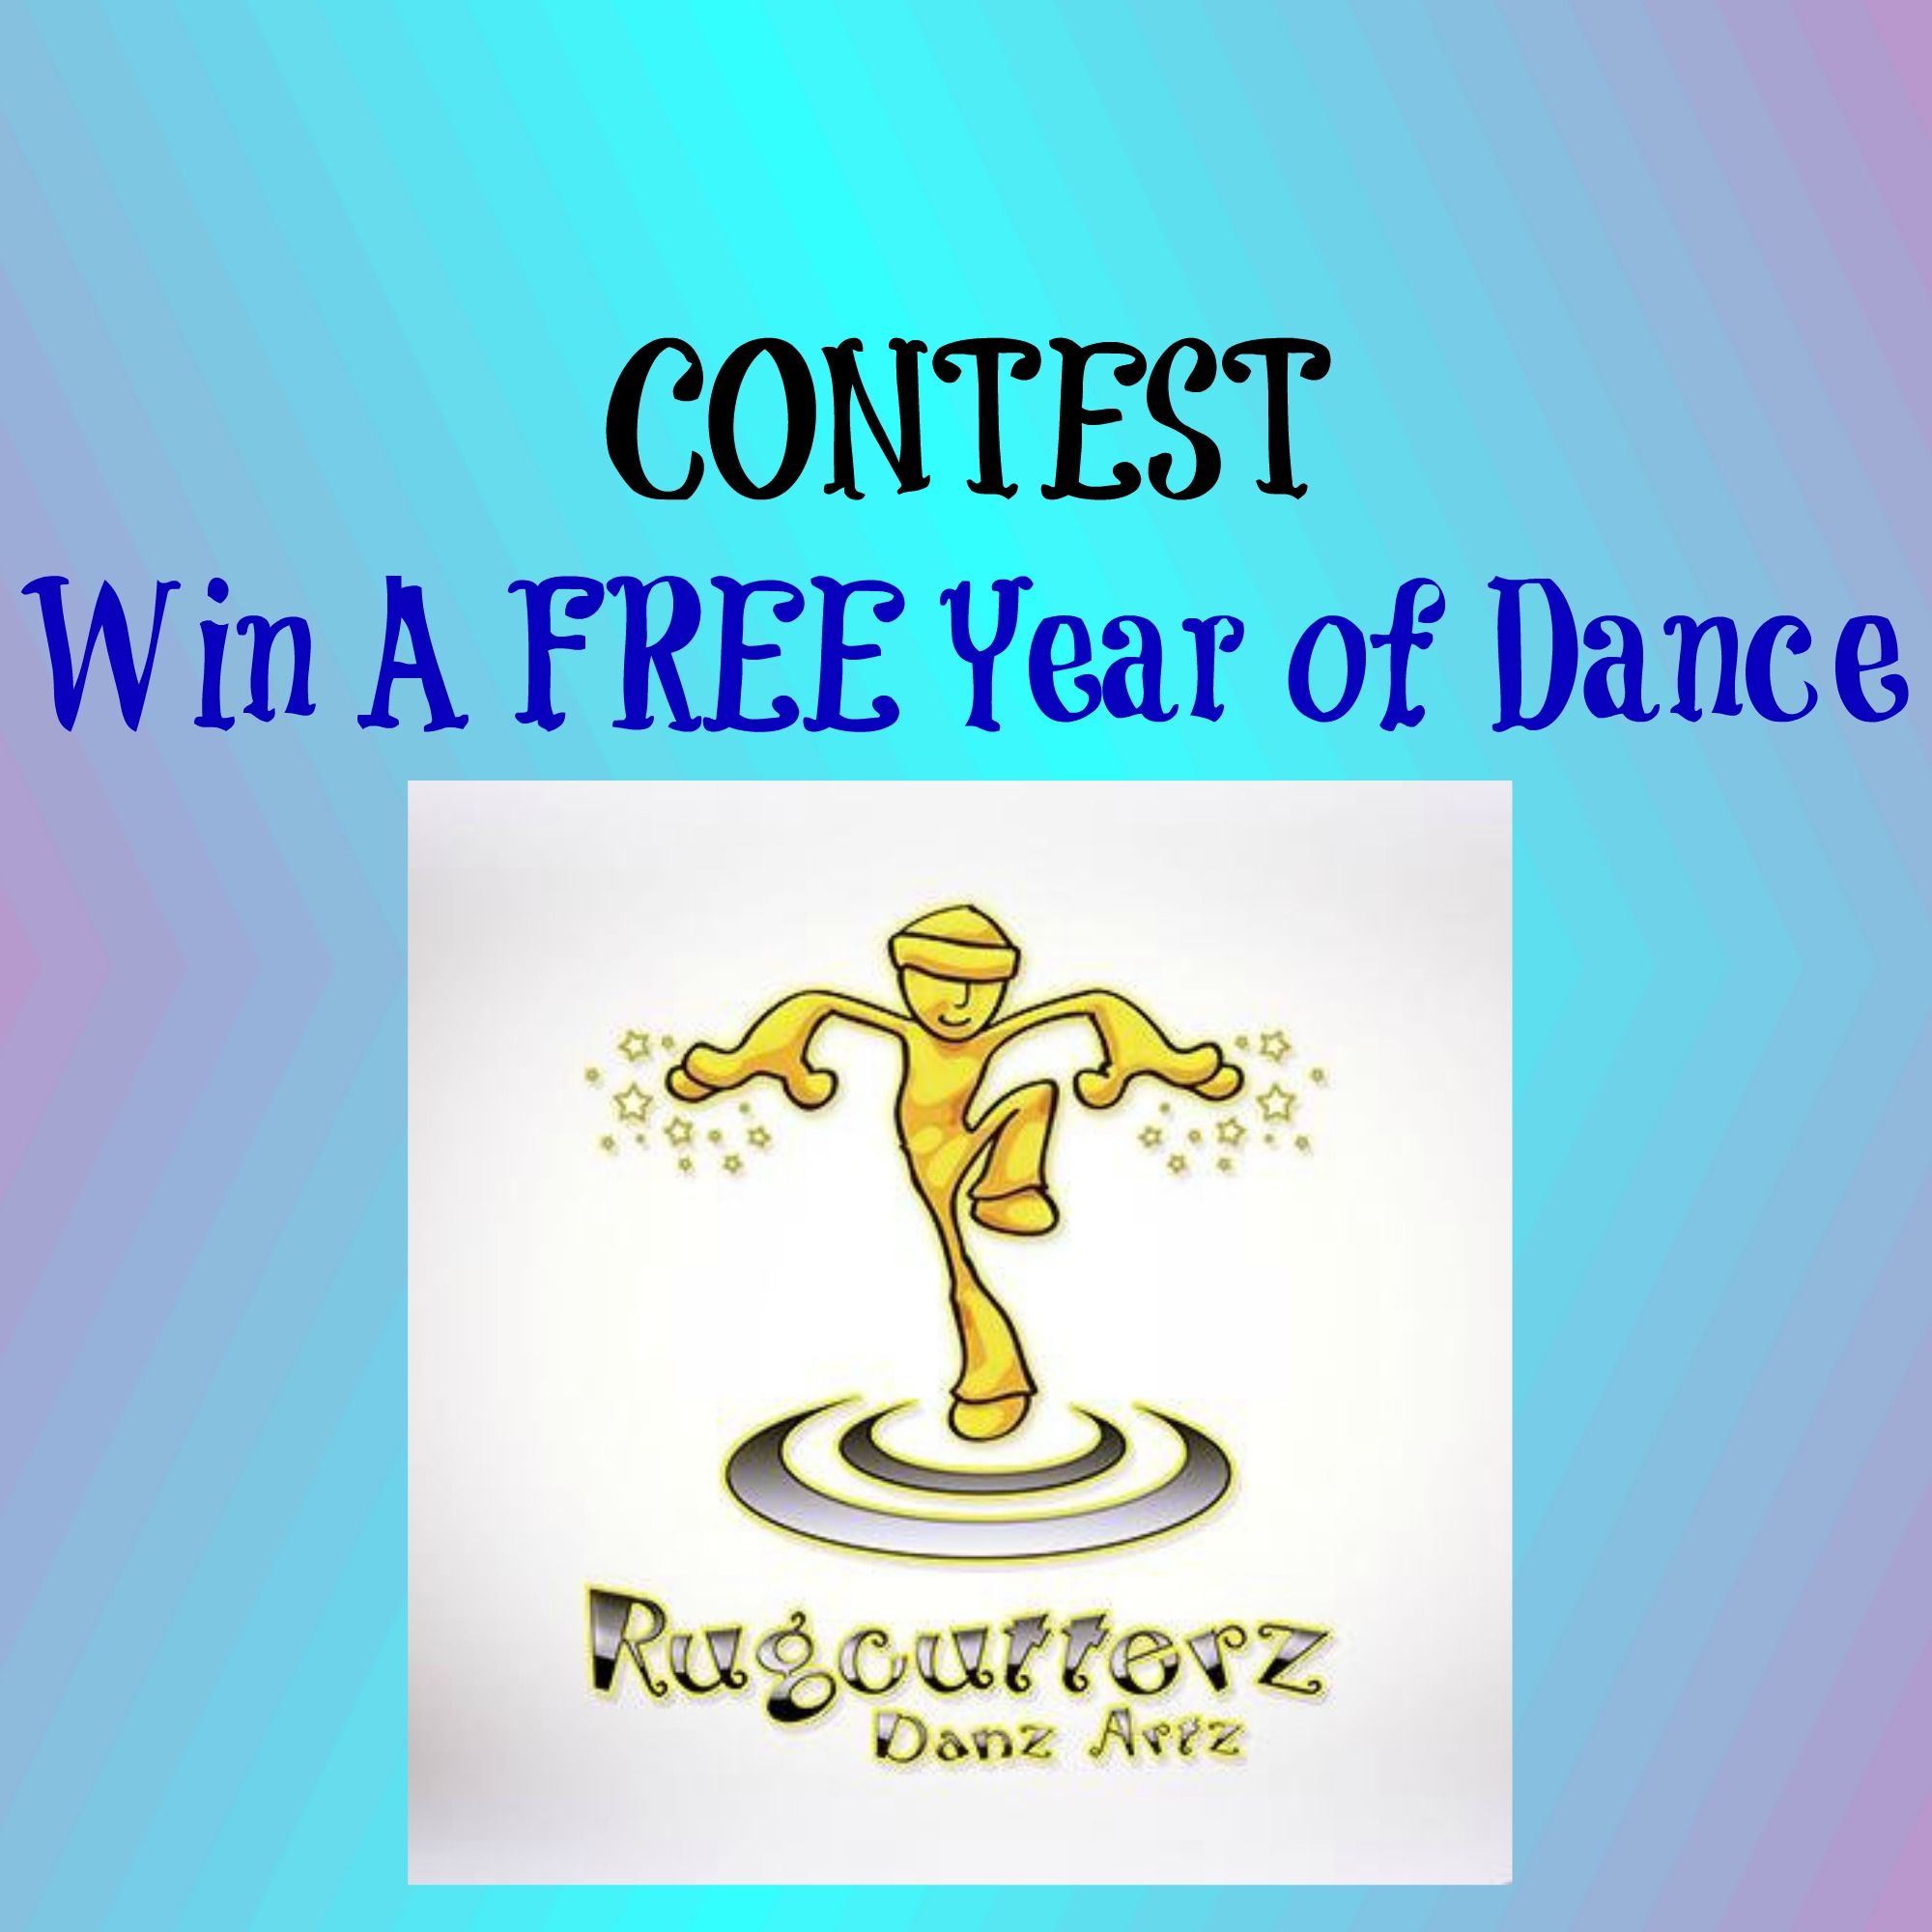 Win A FREE Year Of Dance